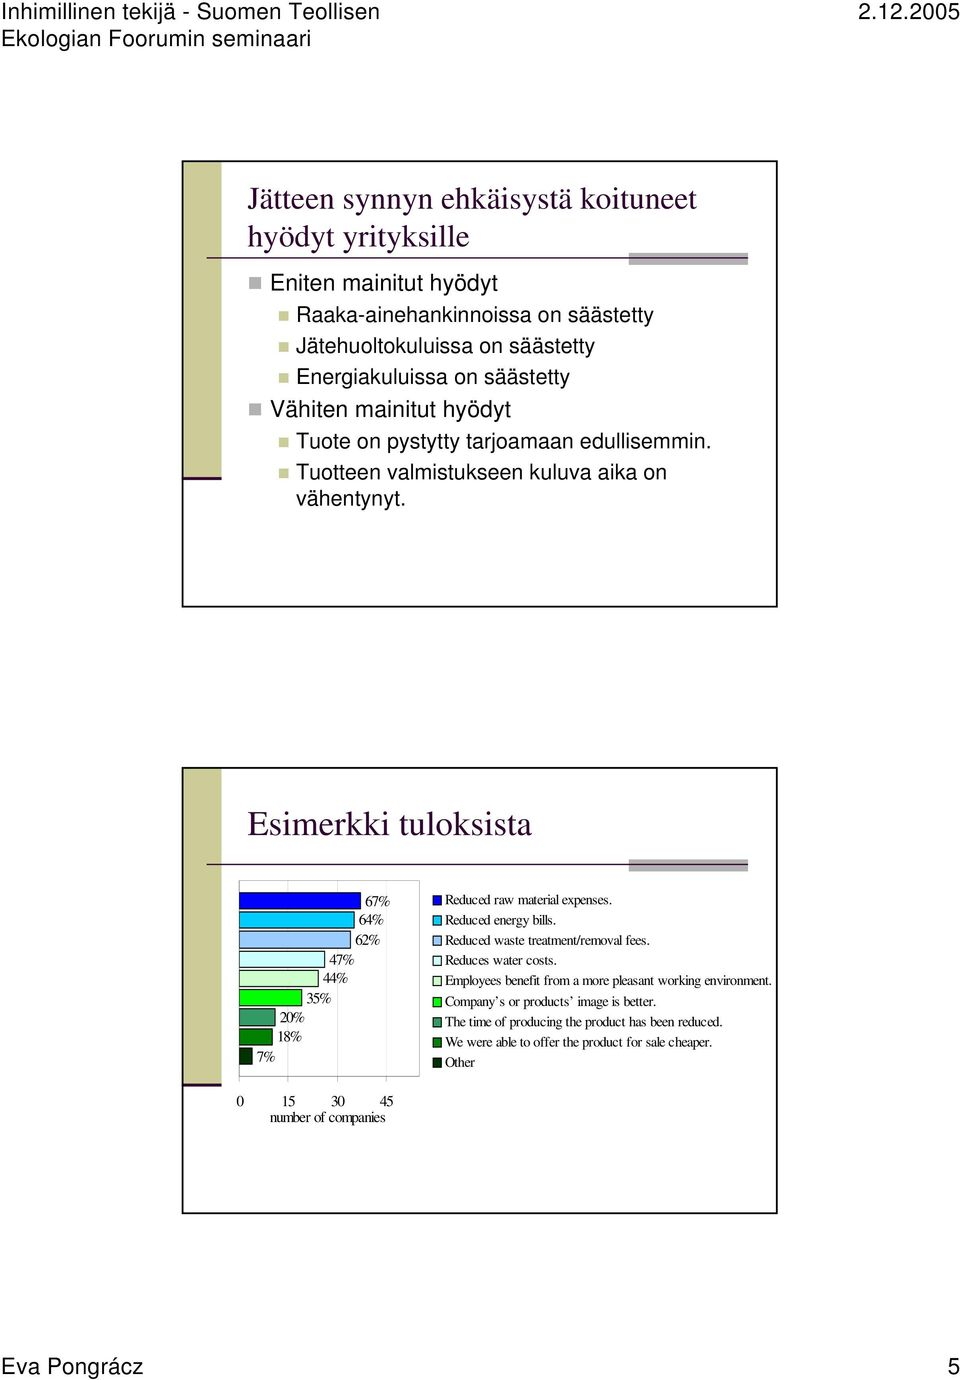 Esimerkki tuloksista 67% 64% 62% 47% 44% 35% 20% 18% 7% Reduced raw material expenses. Reduced energy bills. Reduced waste treatment/removal fees. Reduces water costs.